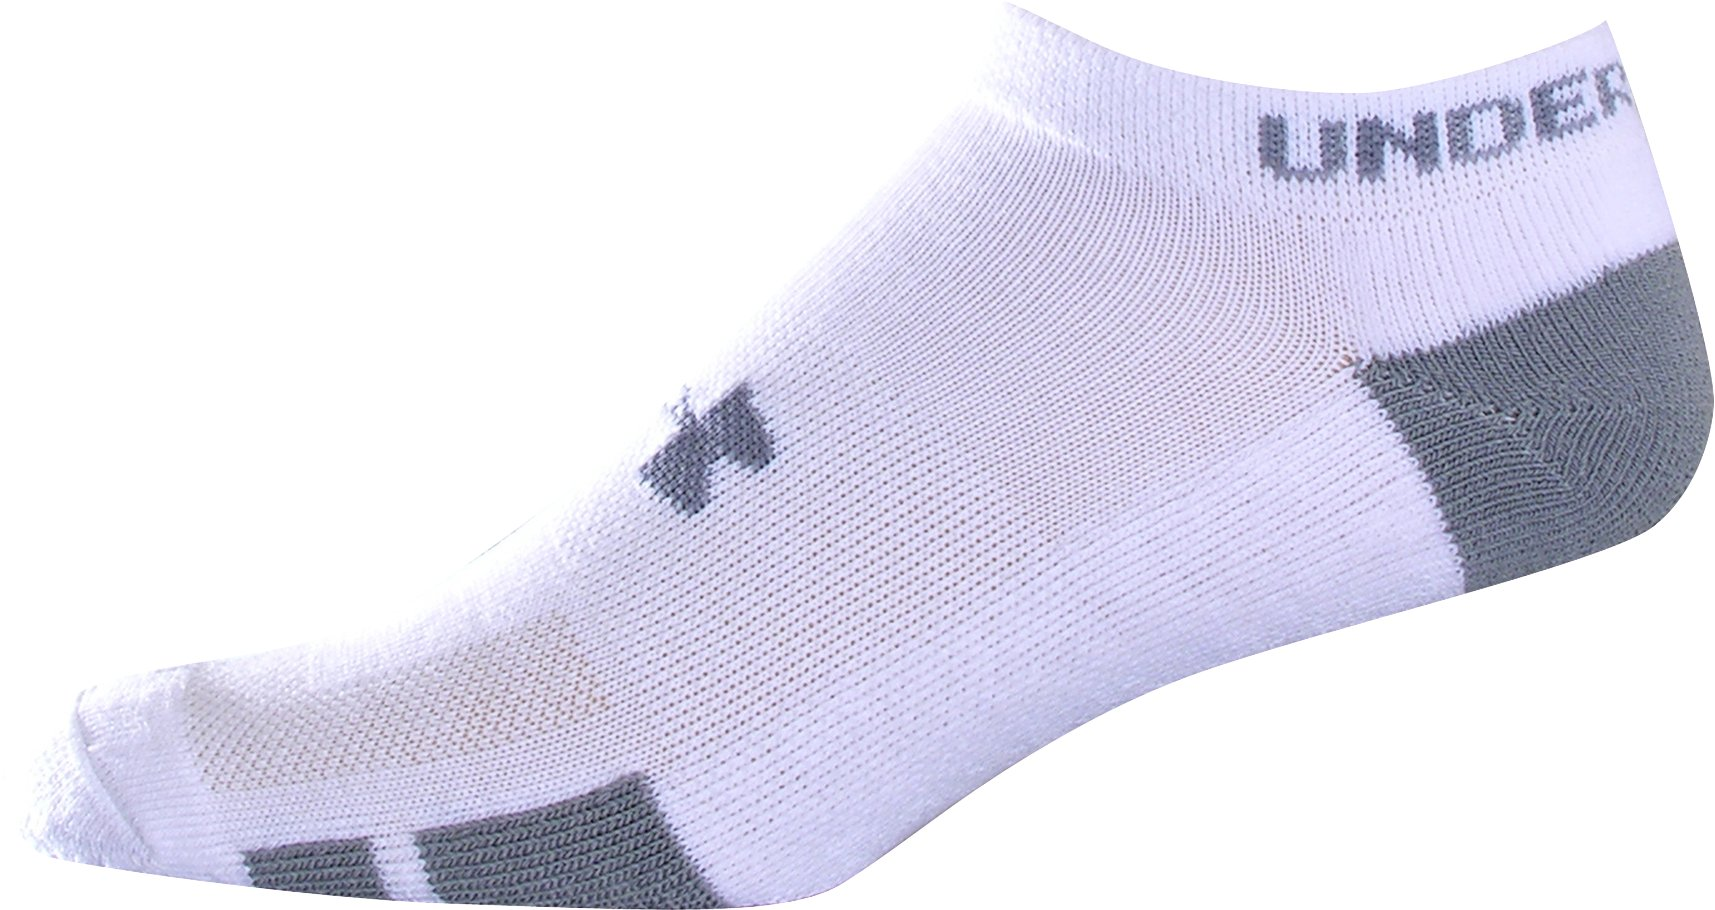 Men's Resistor No-Show Socks 6-Pack, White